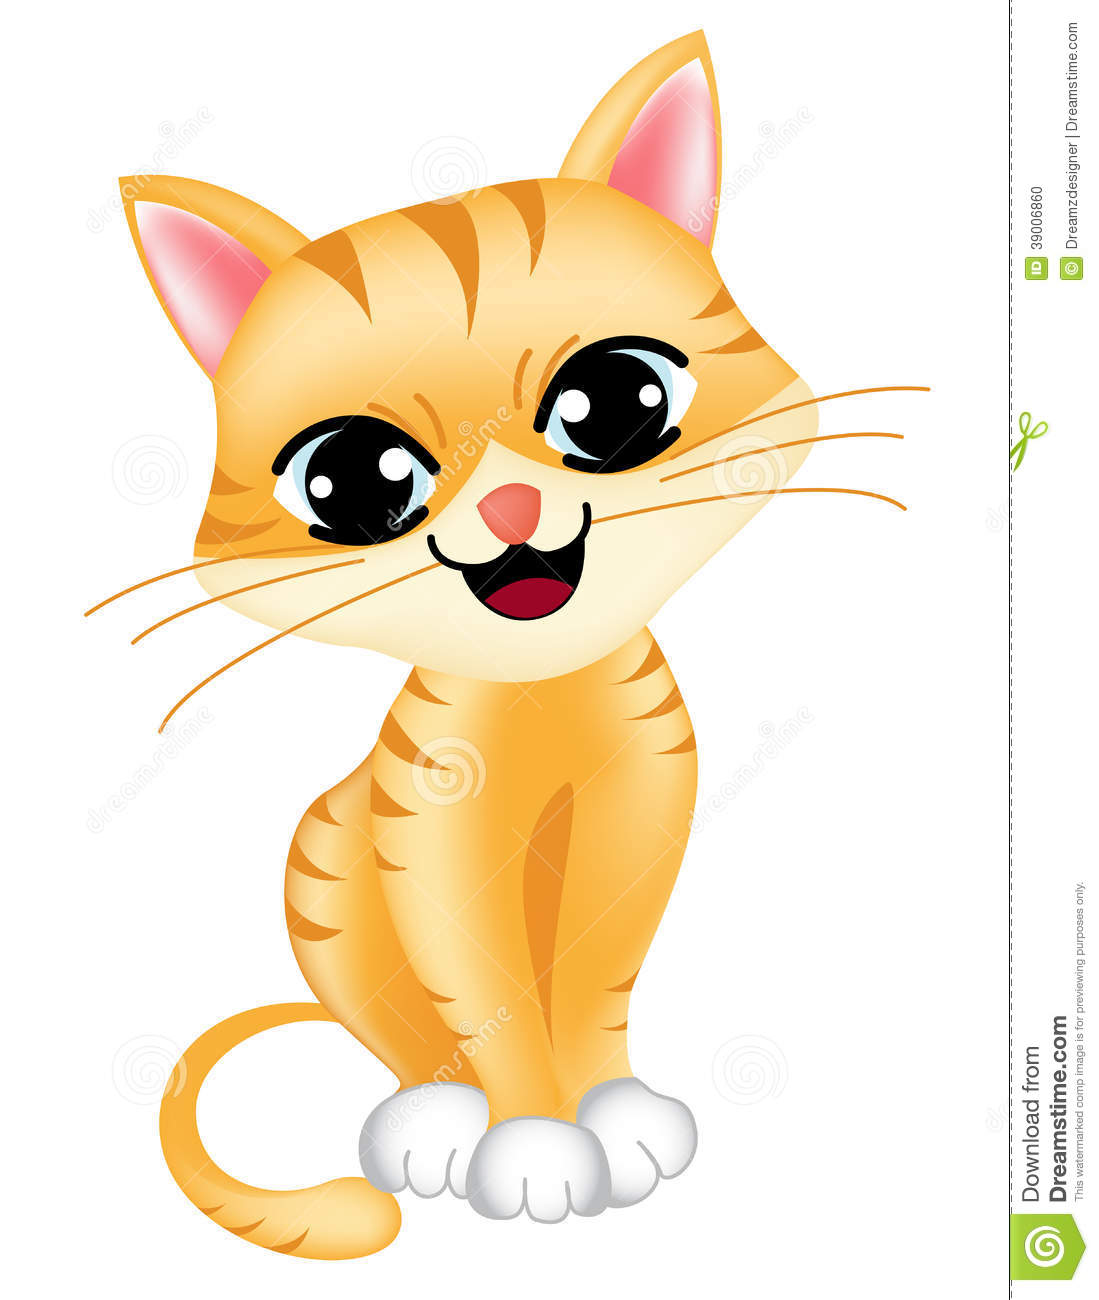 Cute kid dressed like a cat clipart picture freeuse download 91+ Cute Kitten Clipart   ClipartLook picture freeuse download